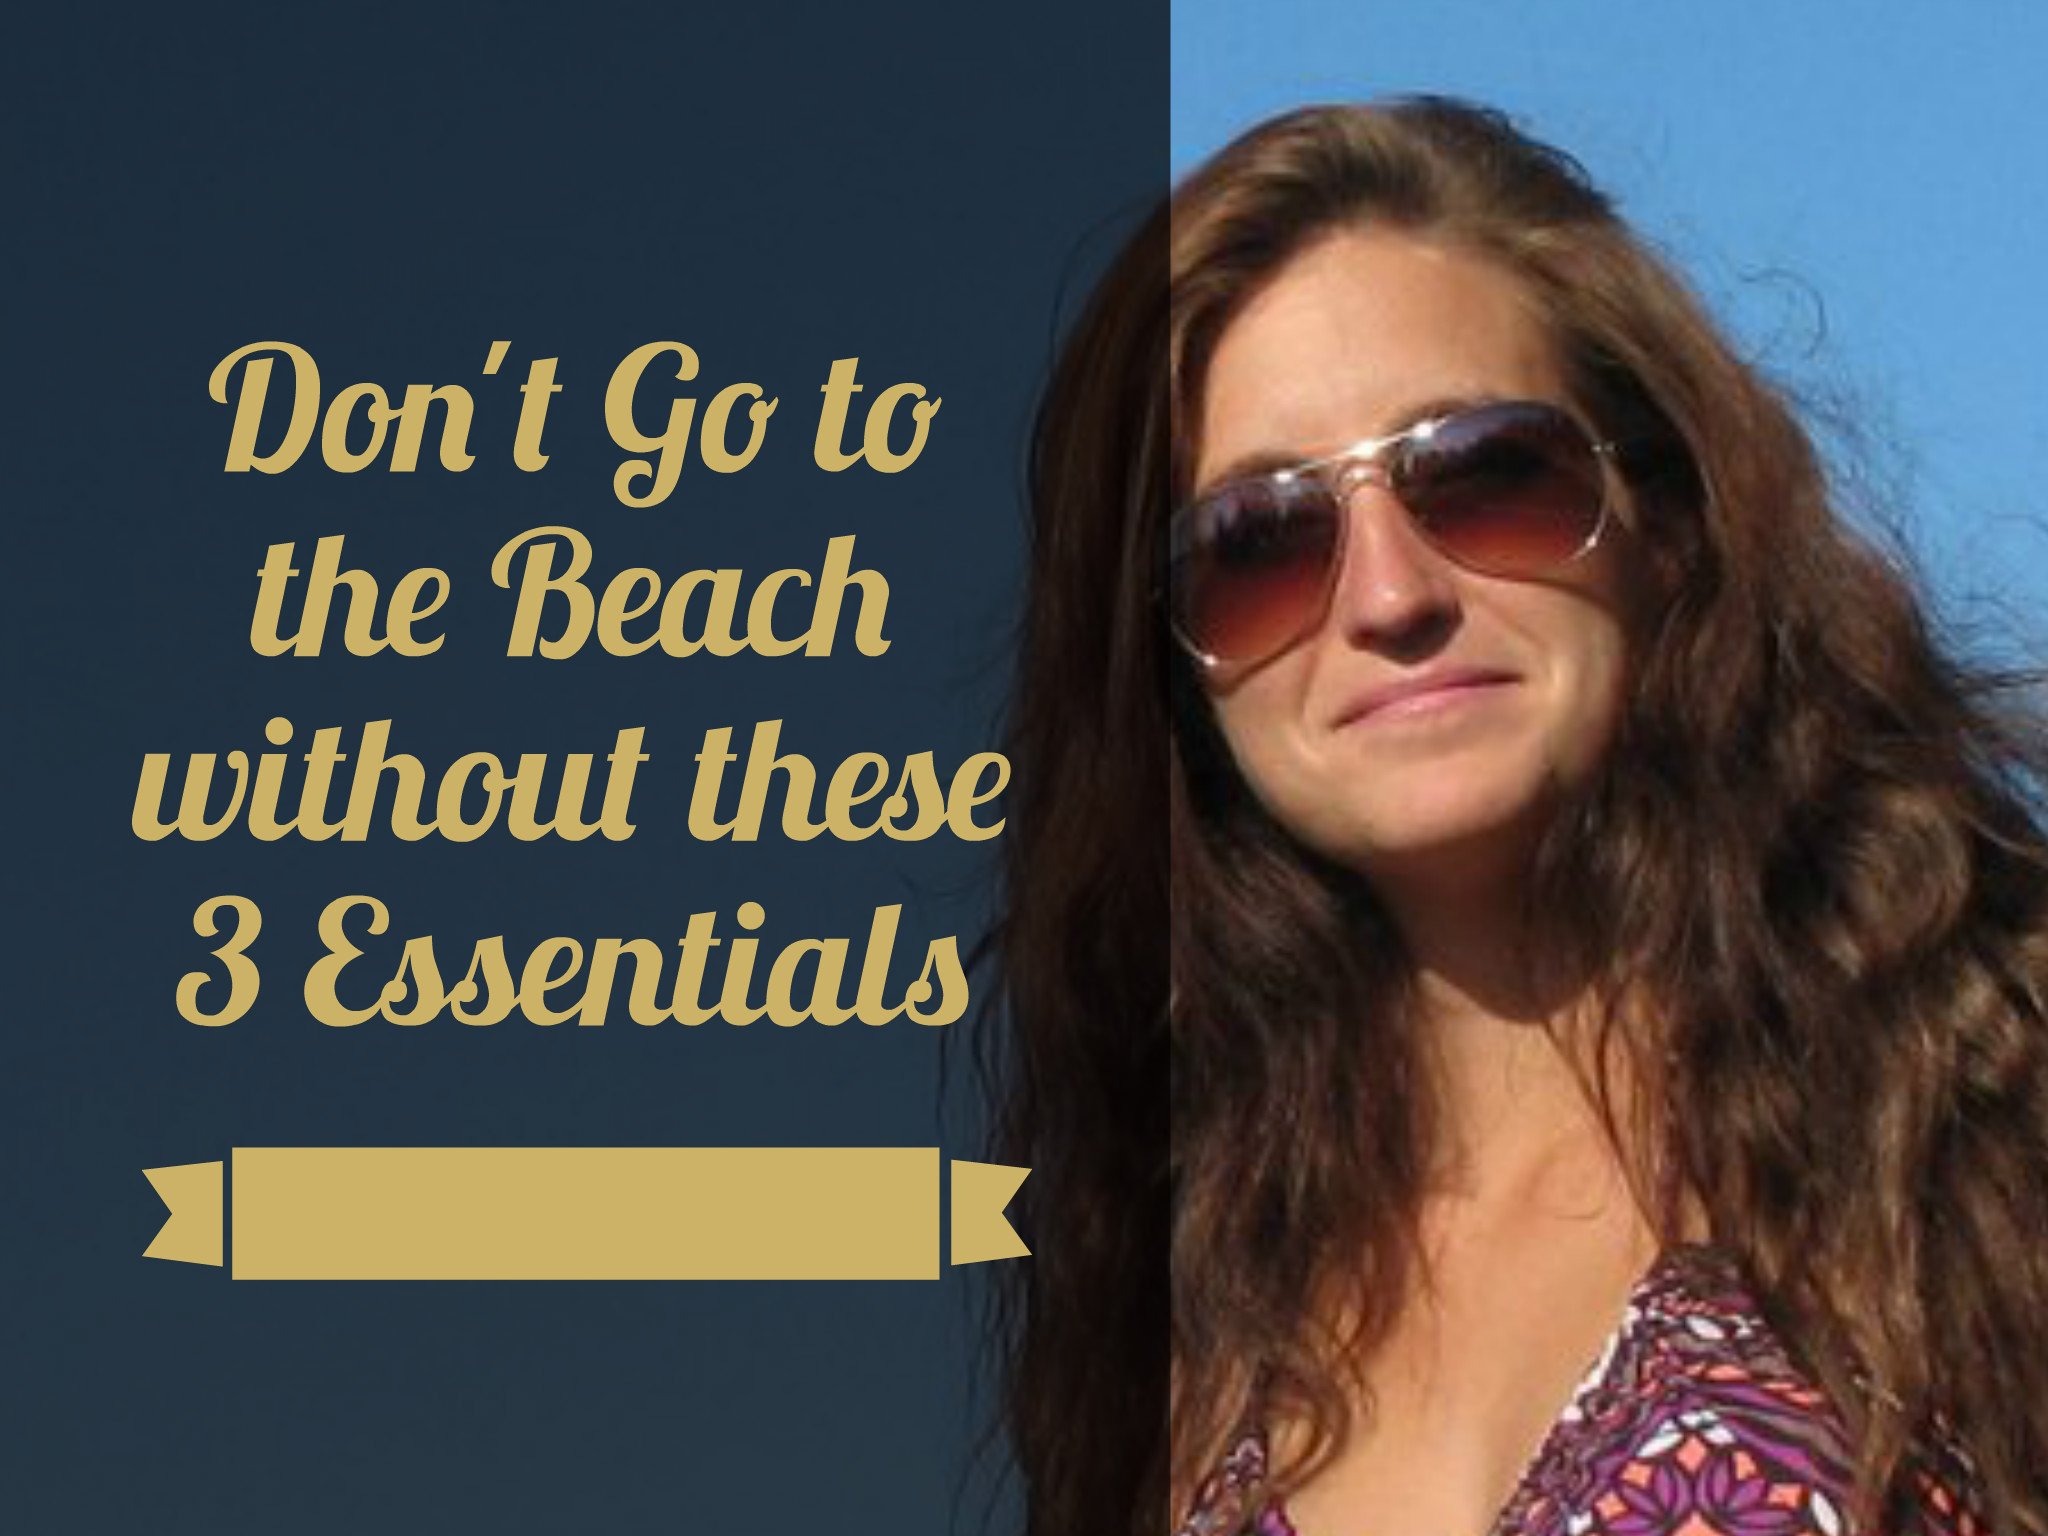 Don't Go to the Beach without these 3 Essentials